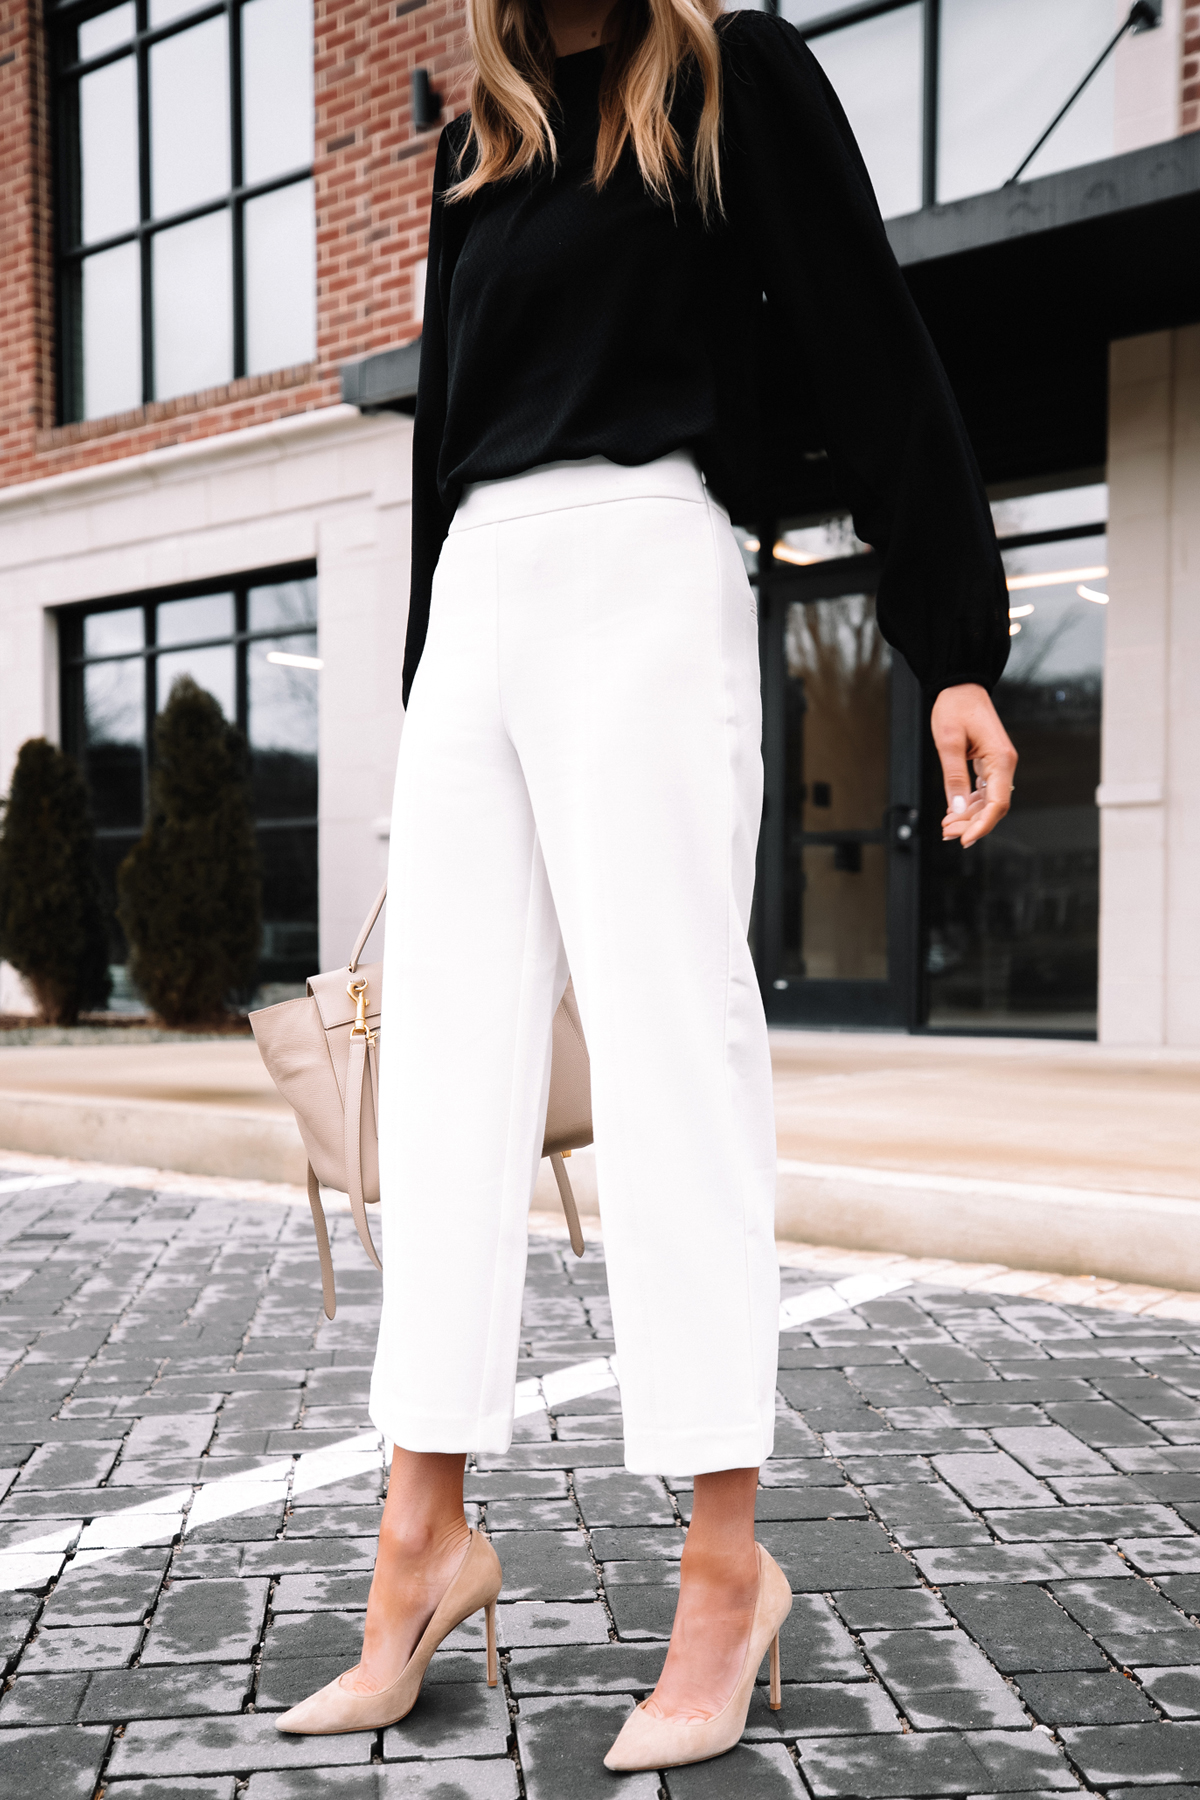 Fashion Jackson Wearing Black Blouse White Pants Beige Pumps Workwear Outfit 4